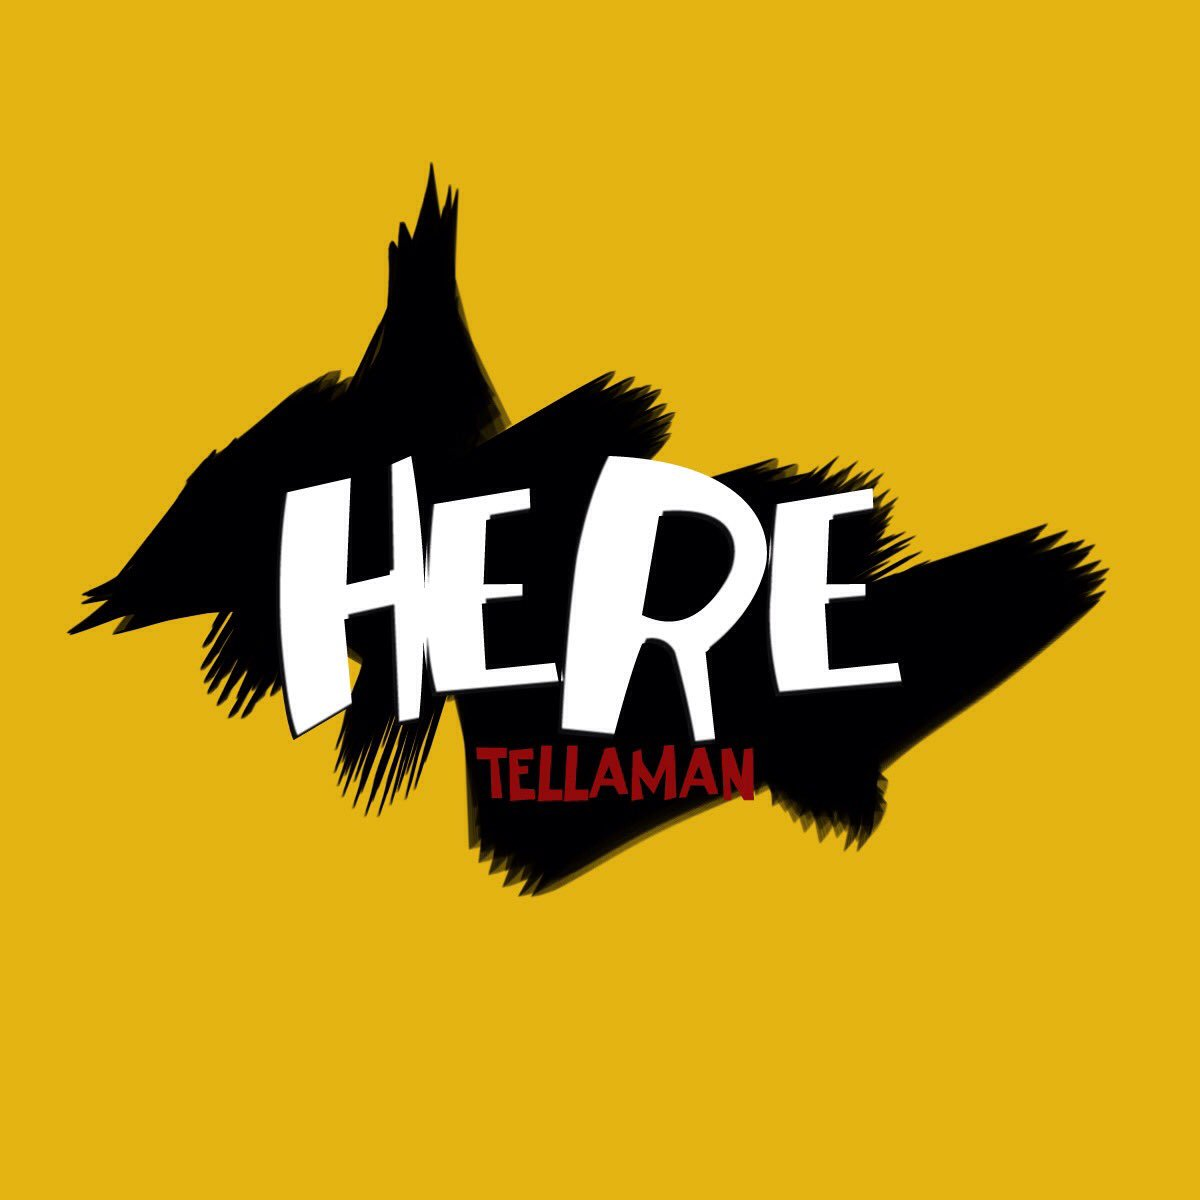 Listen To Tellaman's New 'Here' Song [Download] here